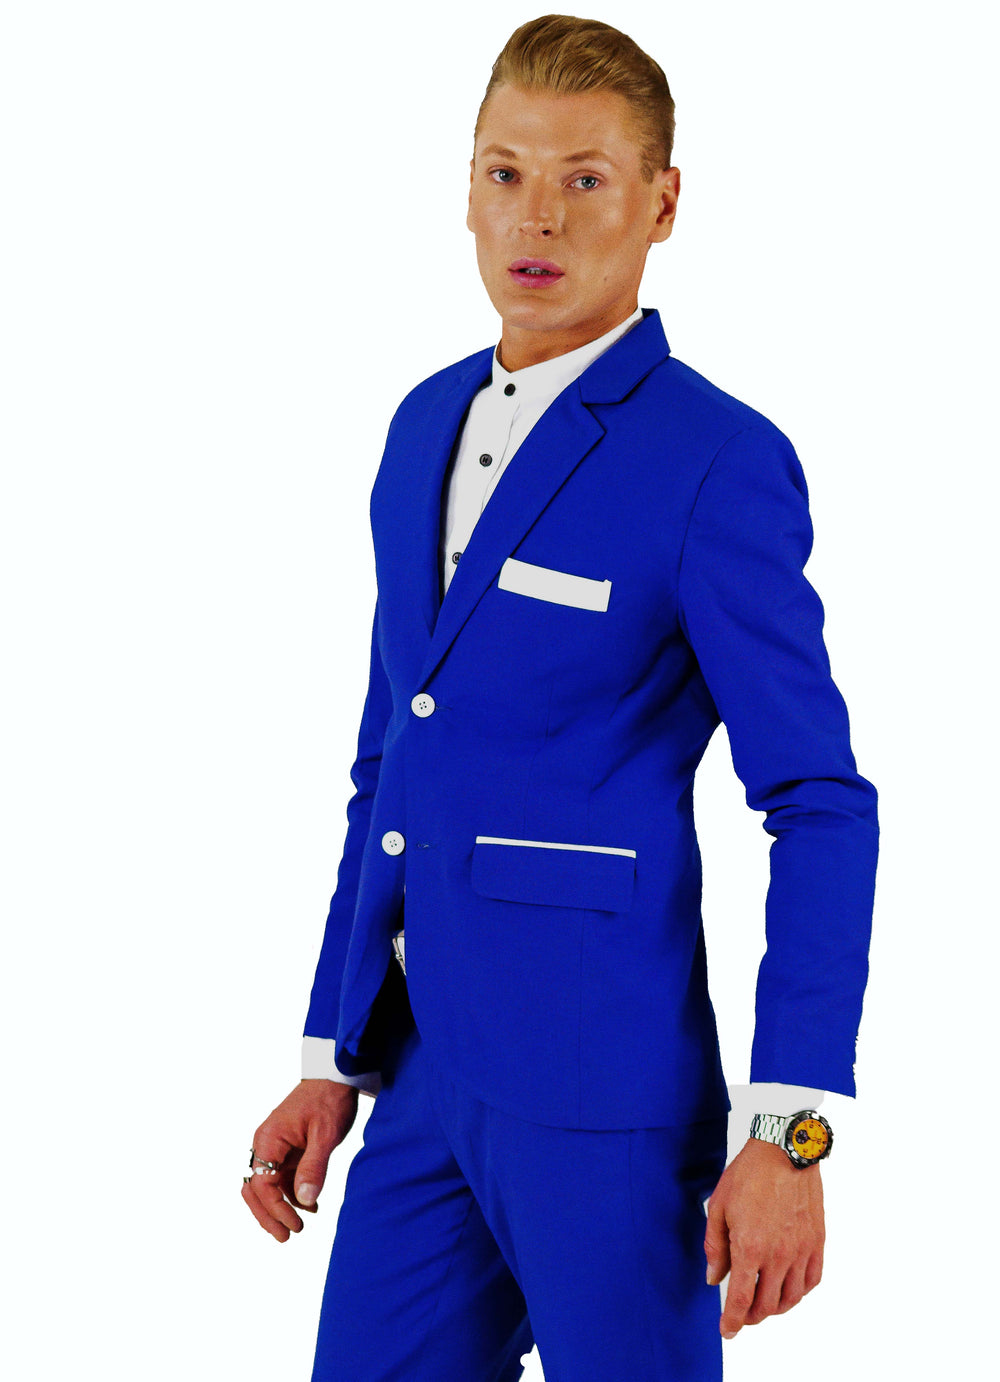 Blade Sleeve Suit | Jacket | Cobalt Blue & White Satin